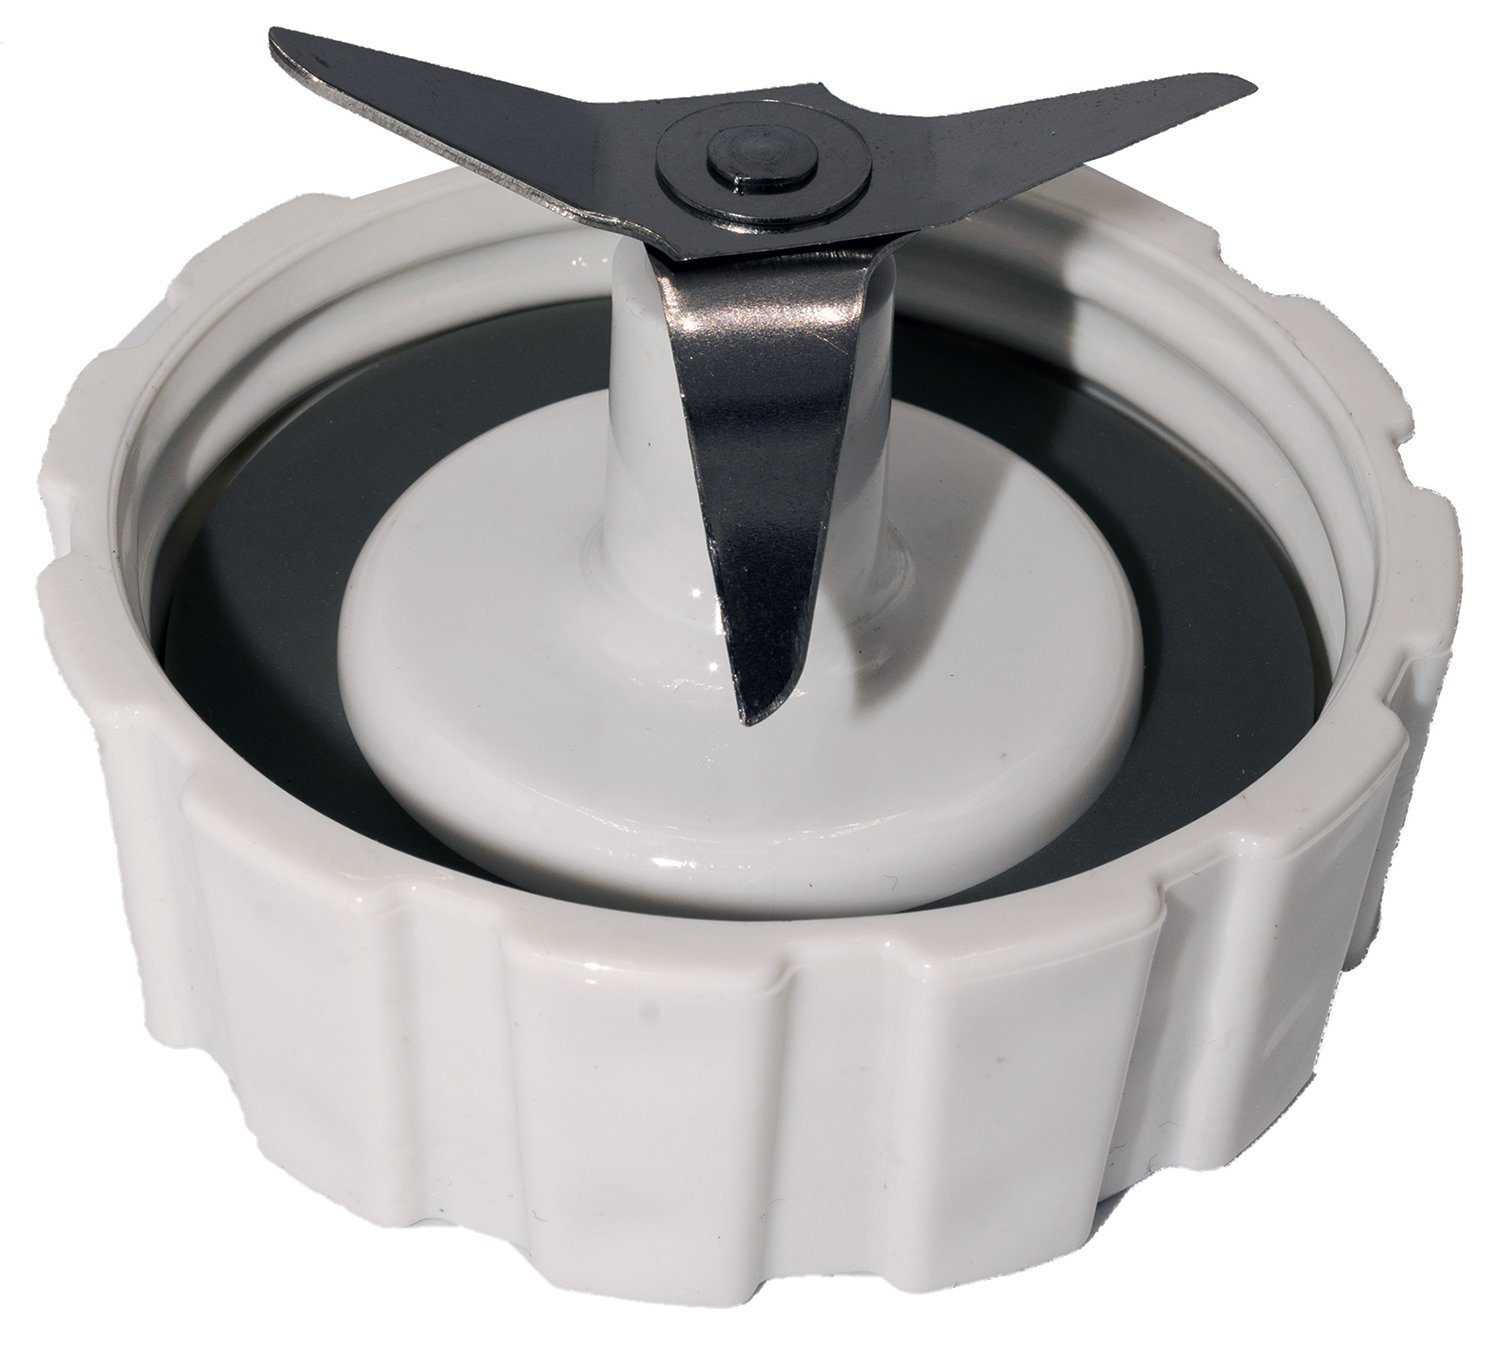 Blendin Replacement Blade With Base Bottom Cap, Sealing Gasket Compatible with Hamilton Beach Blender